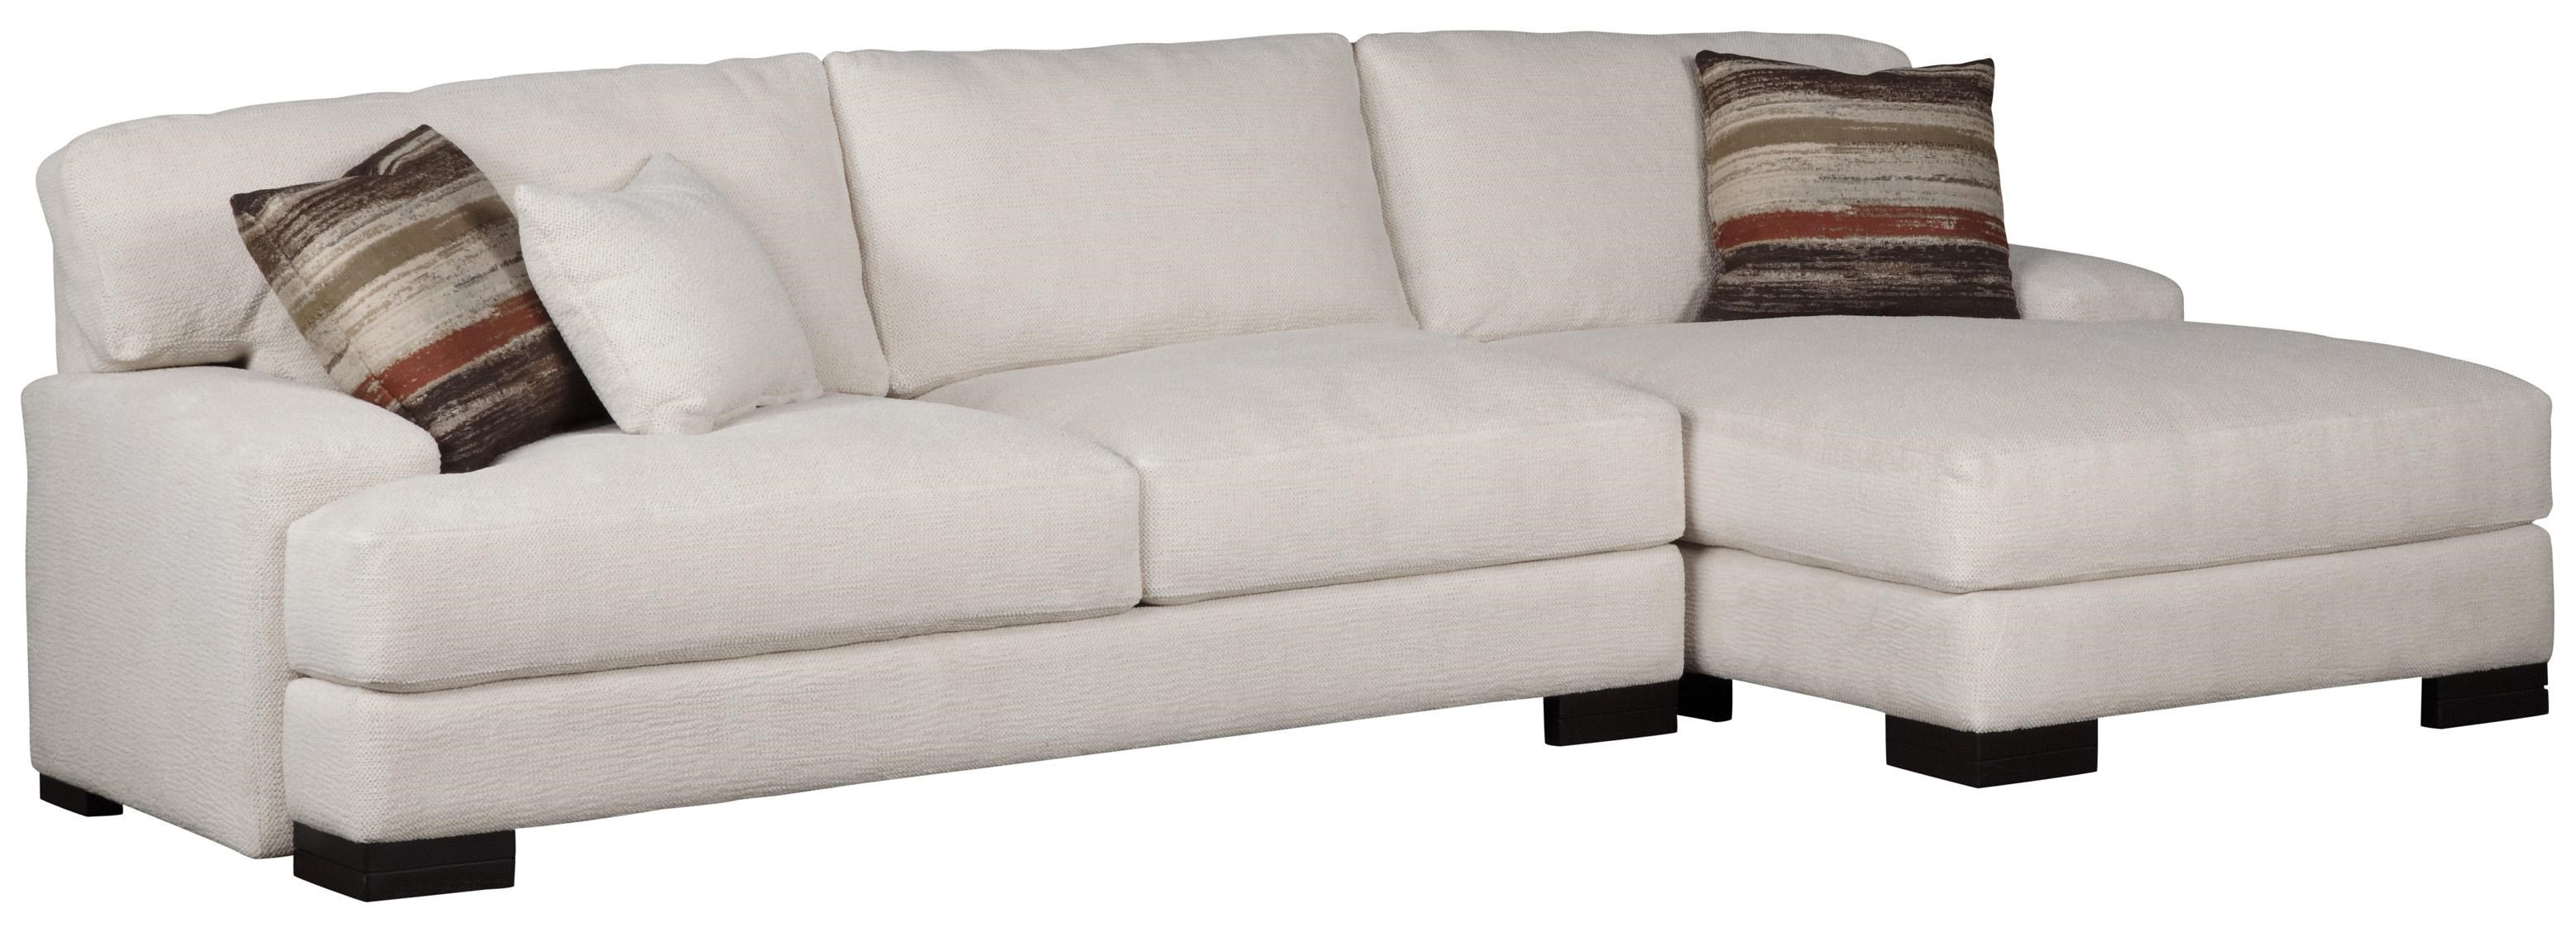 Jonathan Louis Burton Modern Sectional with Right Chaise - Miskelly Furniture - Sectional Sofas  sc 1 st  Miskelly Furniture : jonathan louis chaise lounge - Sectionals, Sofas & Couches